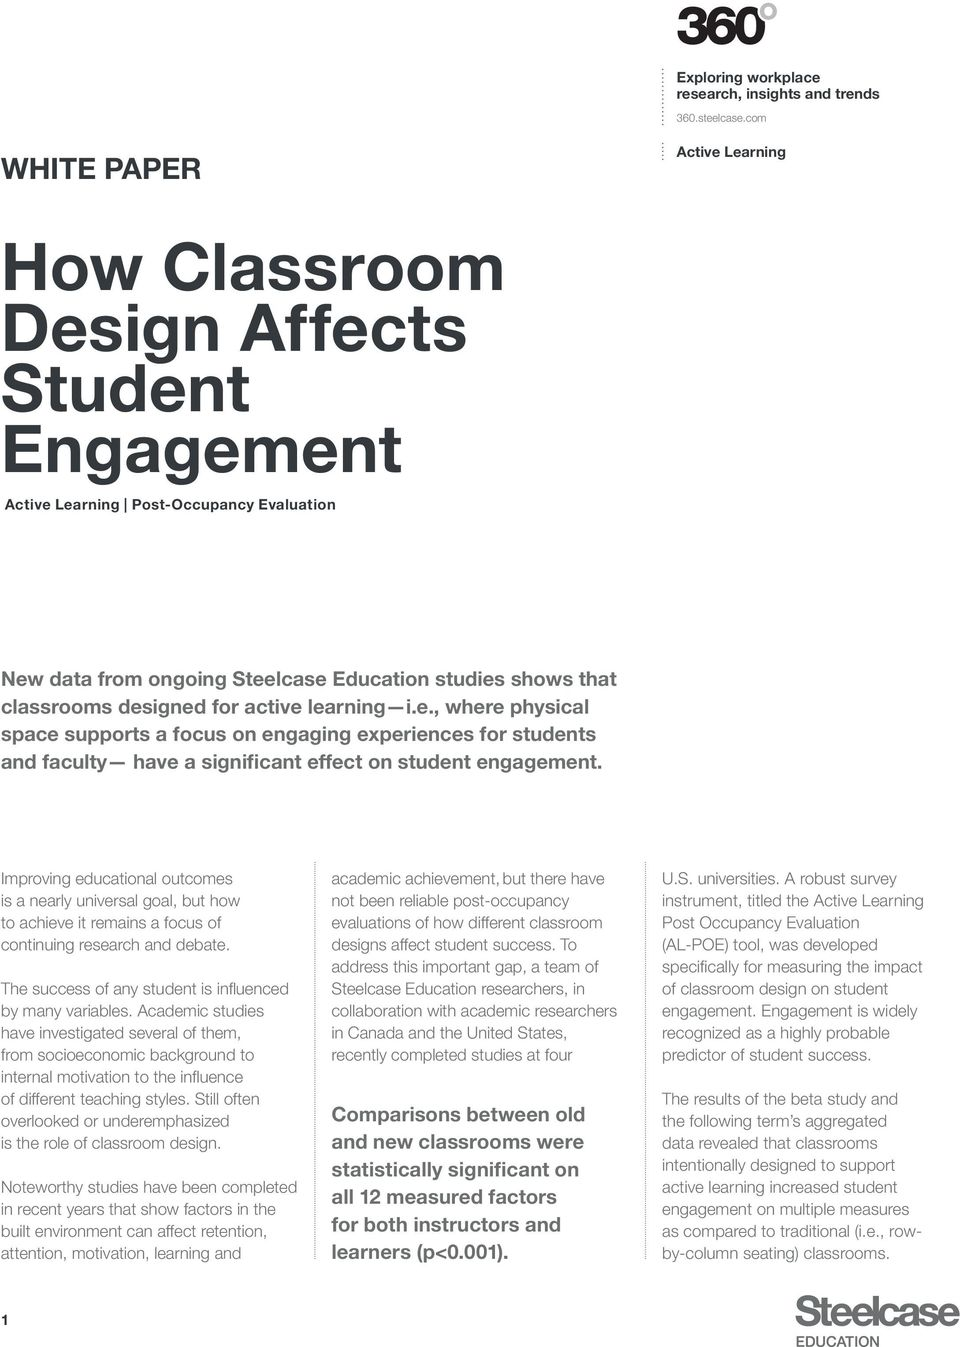 How Classroom Design Affects Student Engagement - PDF